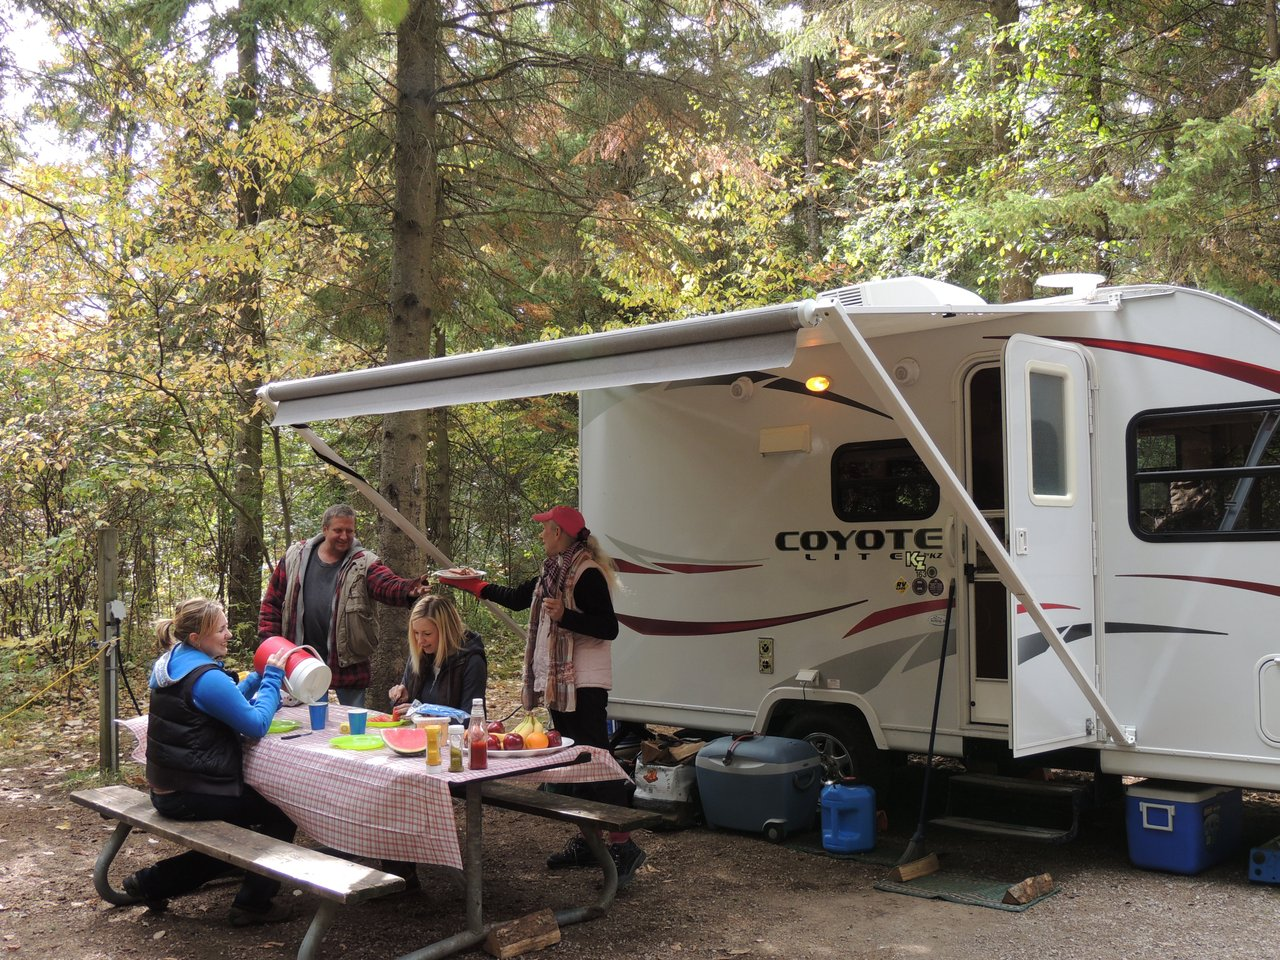 Motorhome campers at picnic table in woods